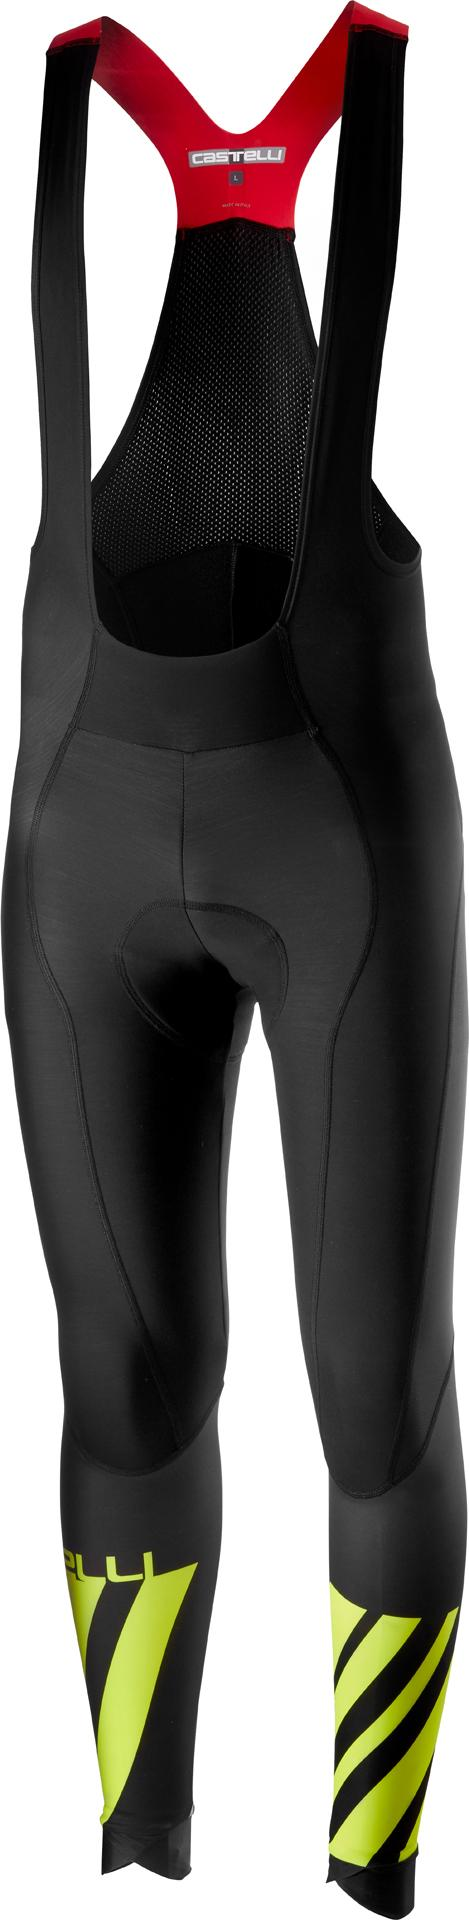 Castelli Fietsbroek lang Heren Zwart Fluo / CA Lw Bibtight Black/Yellow Fluo